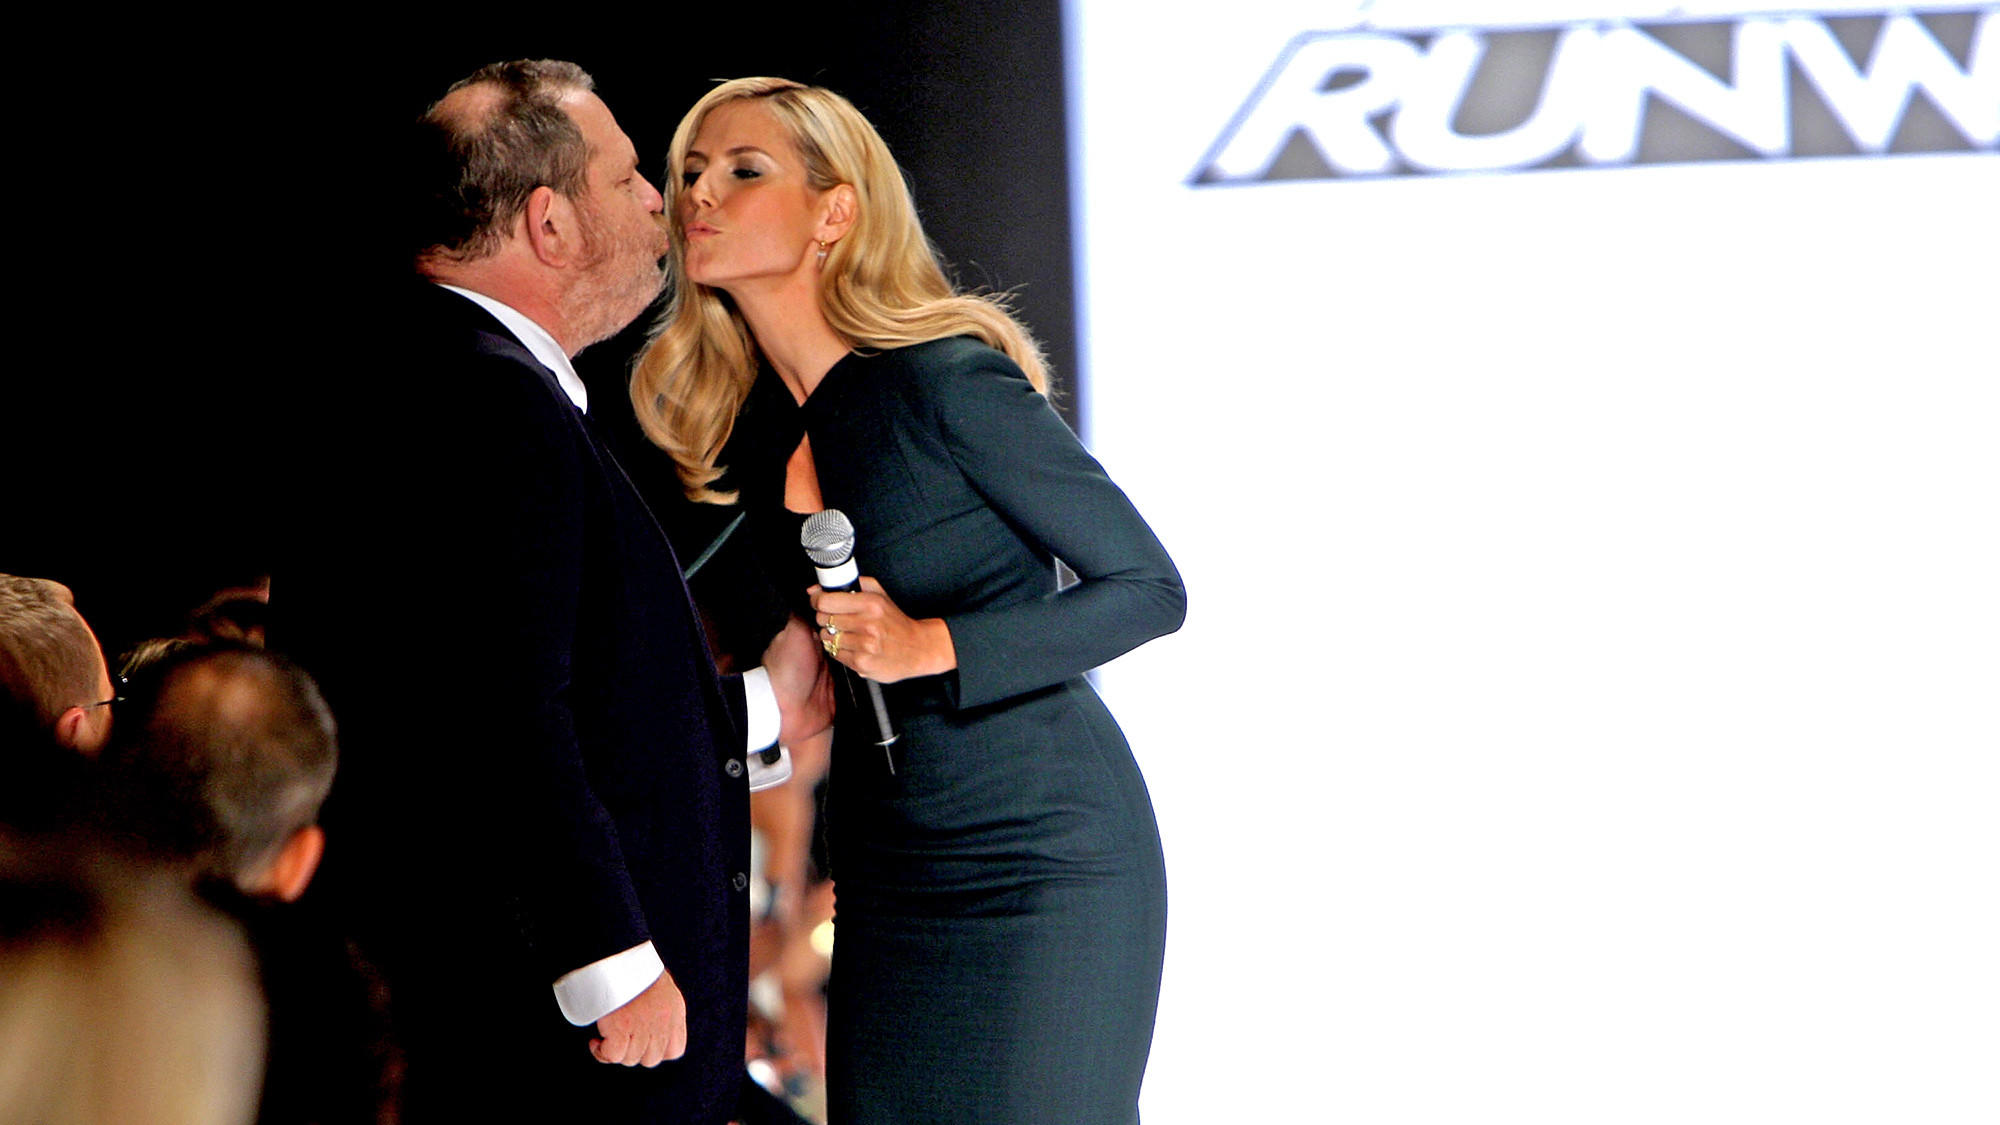 Harvey Weinstein and Heidi Klum kiss